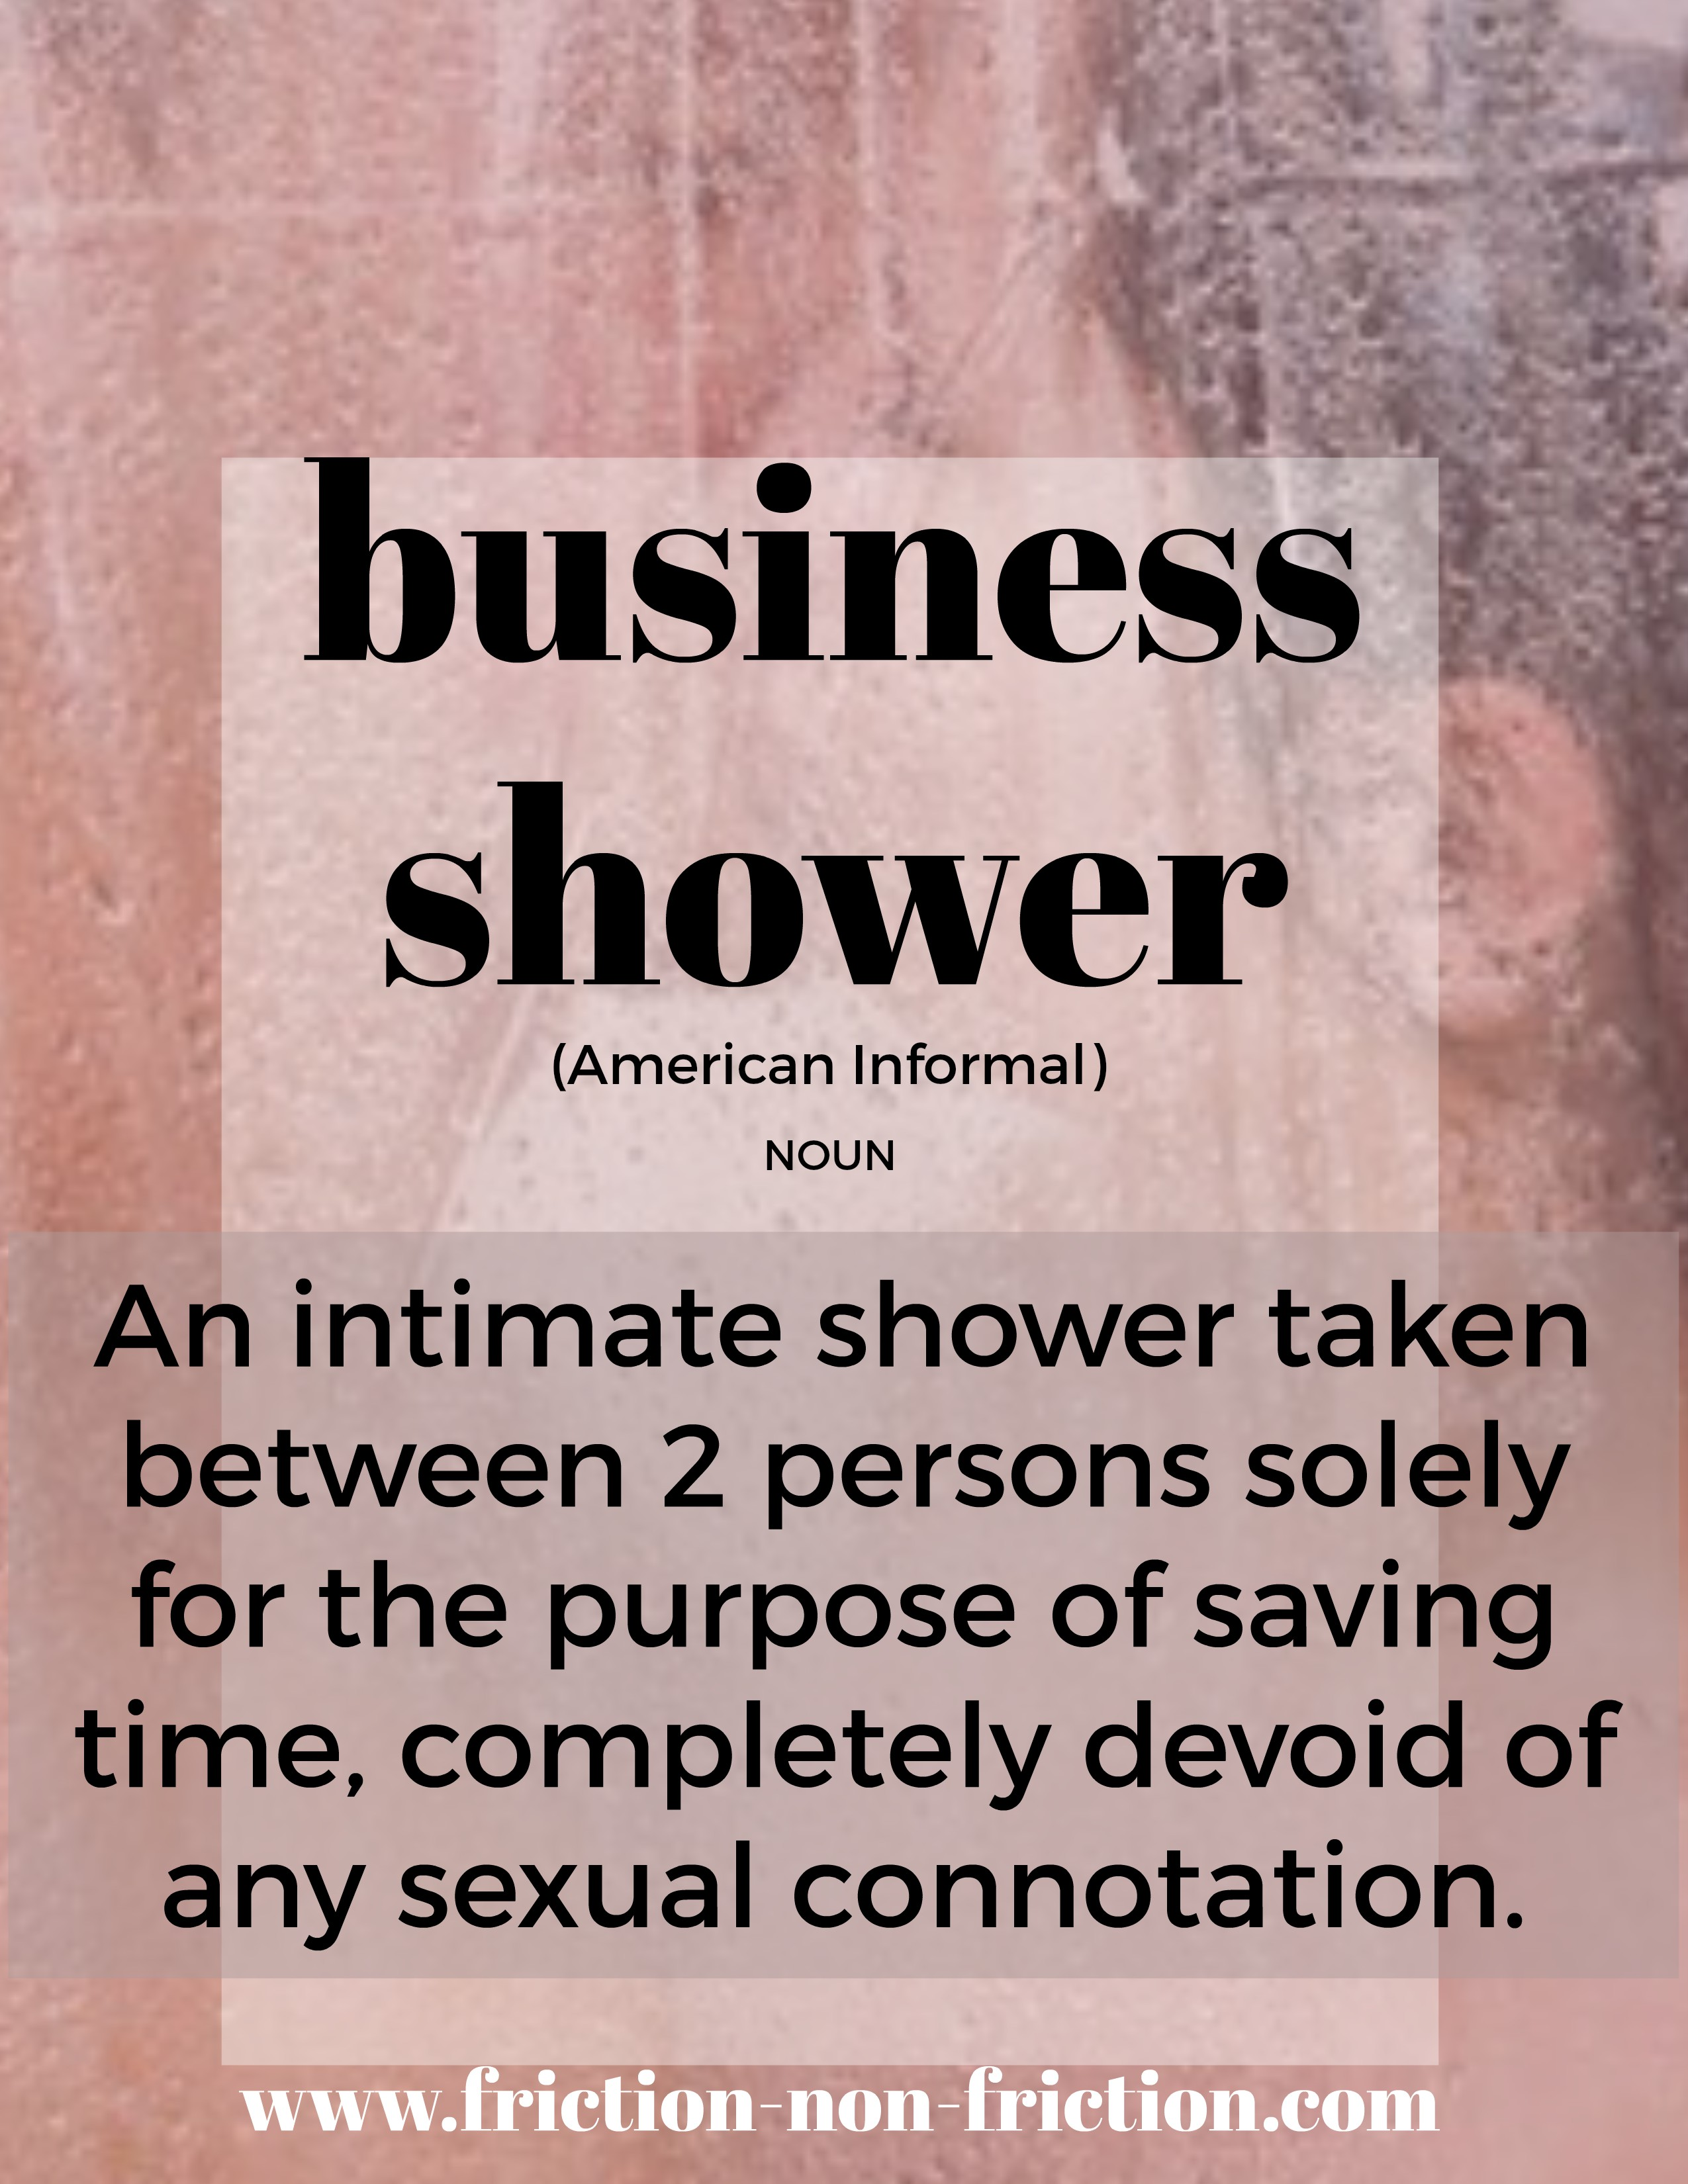 Business Shower -- another great FRICTIONARY definition from Friction|non|Friction